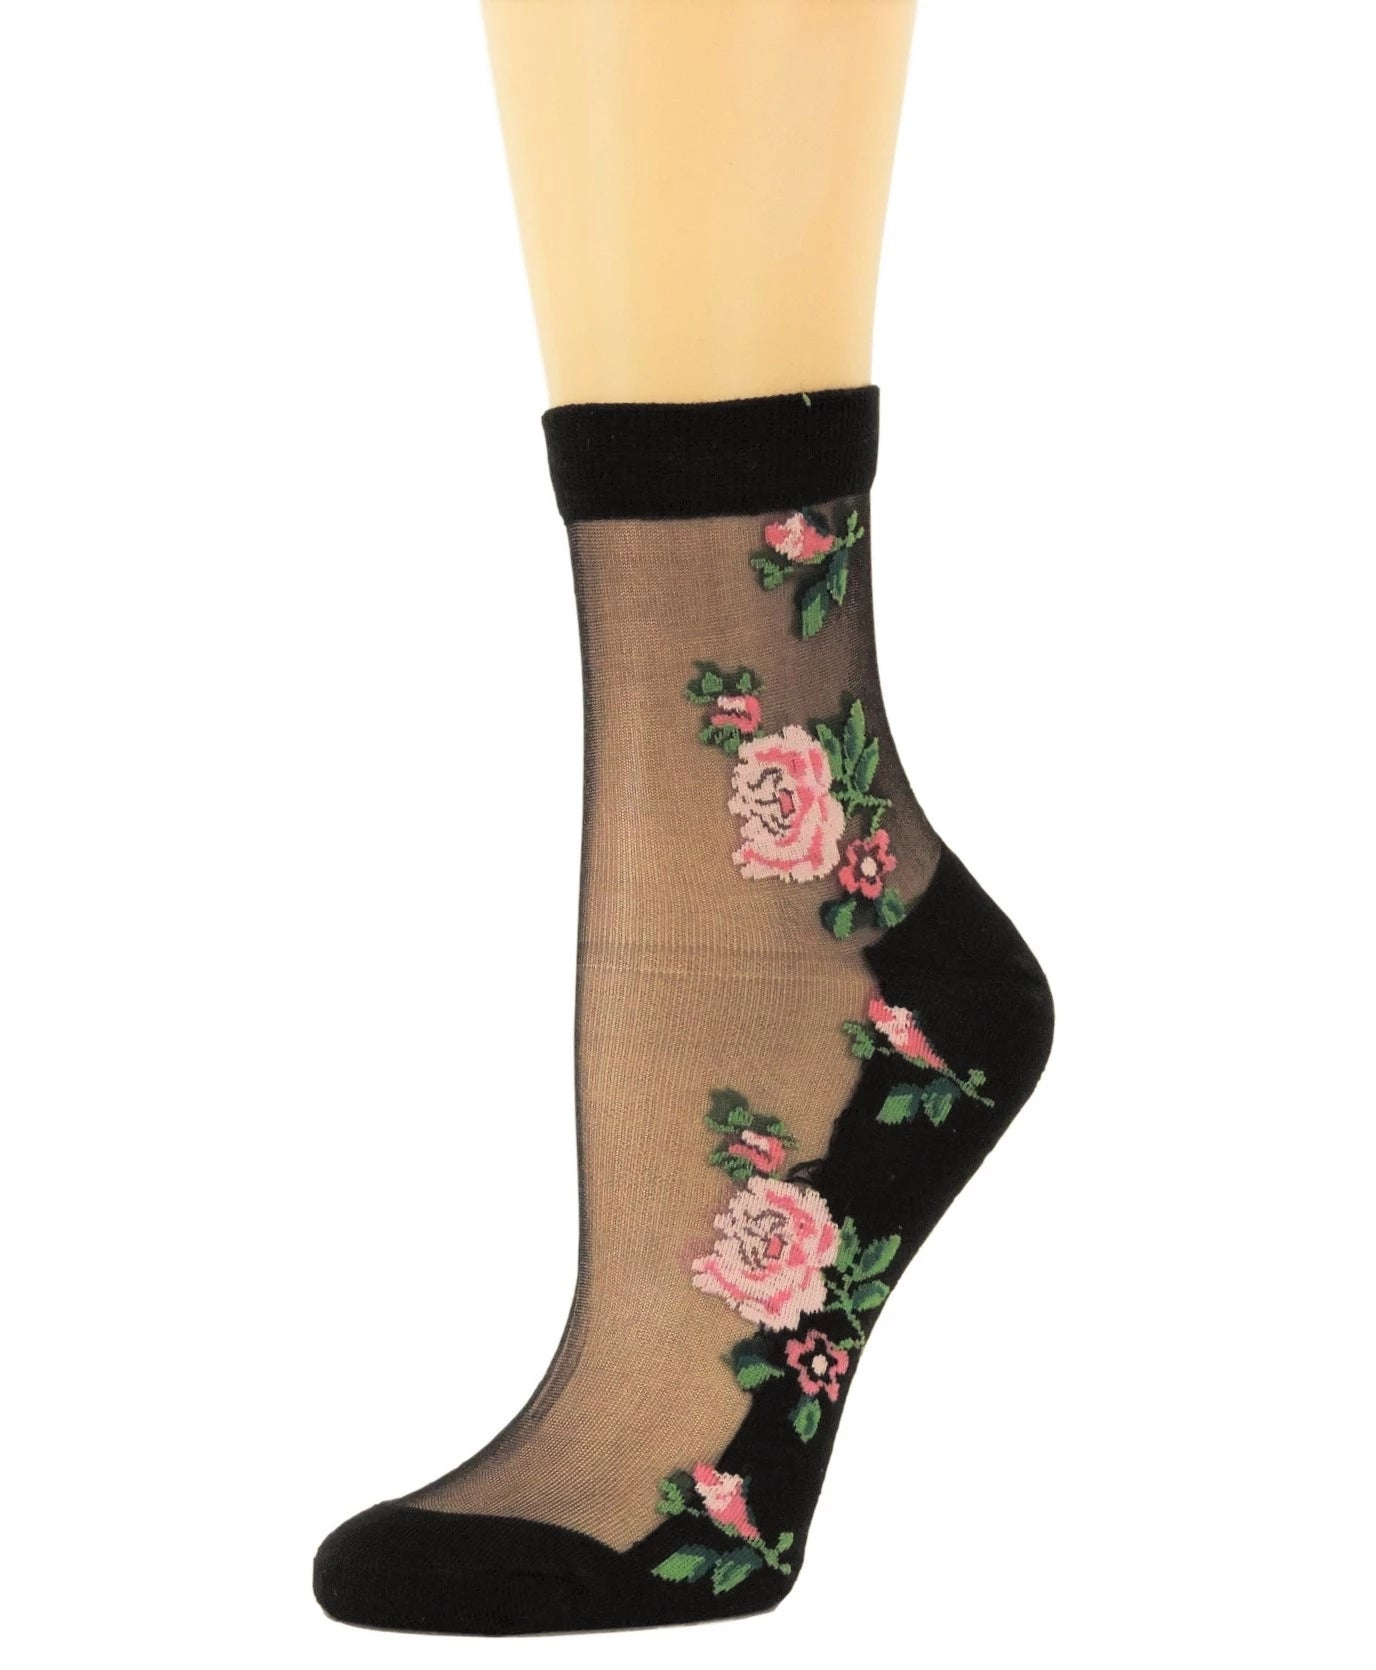 Two Peach Roses Sheer Socks - Global Trendz Fashion®